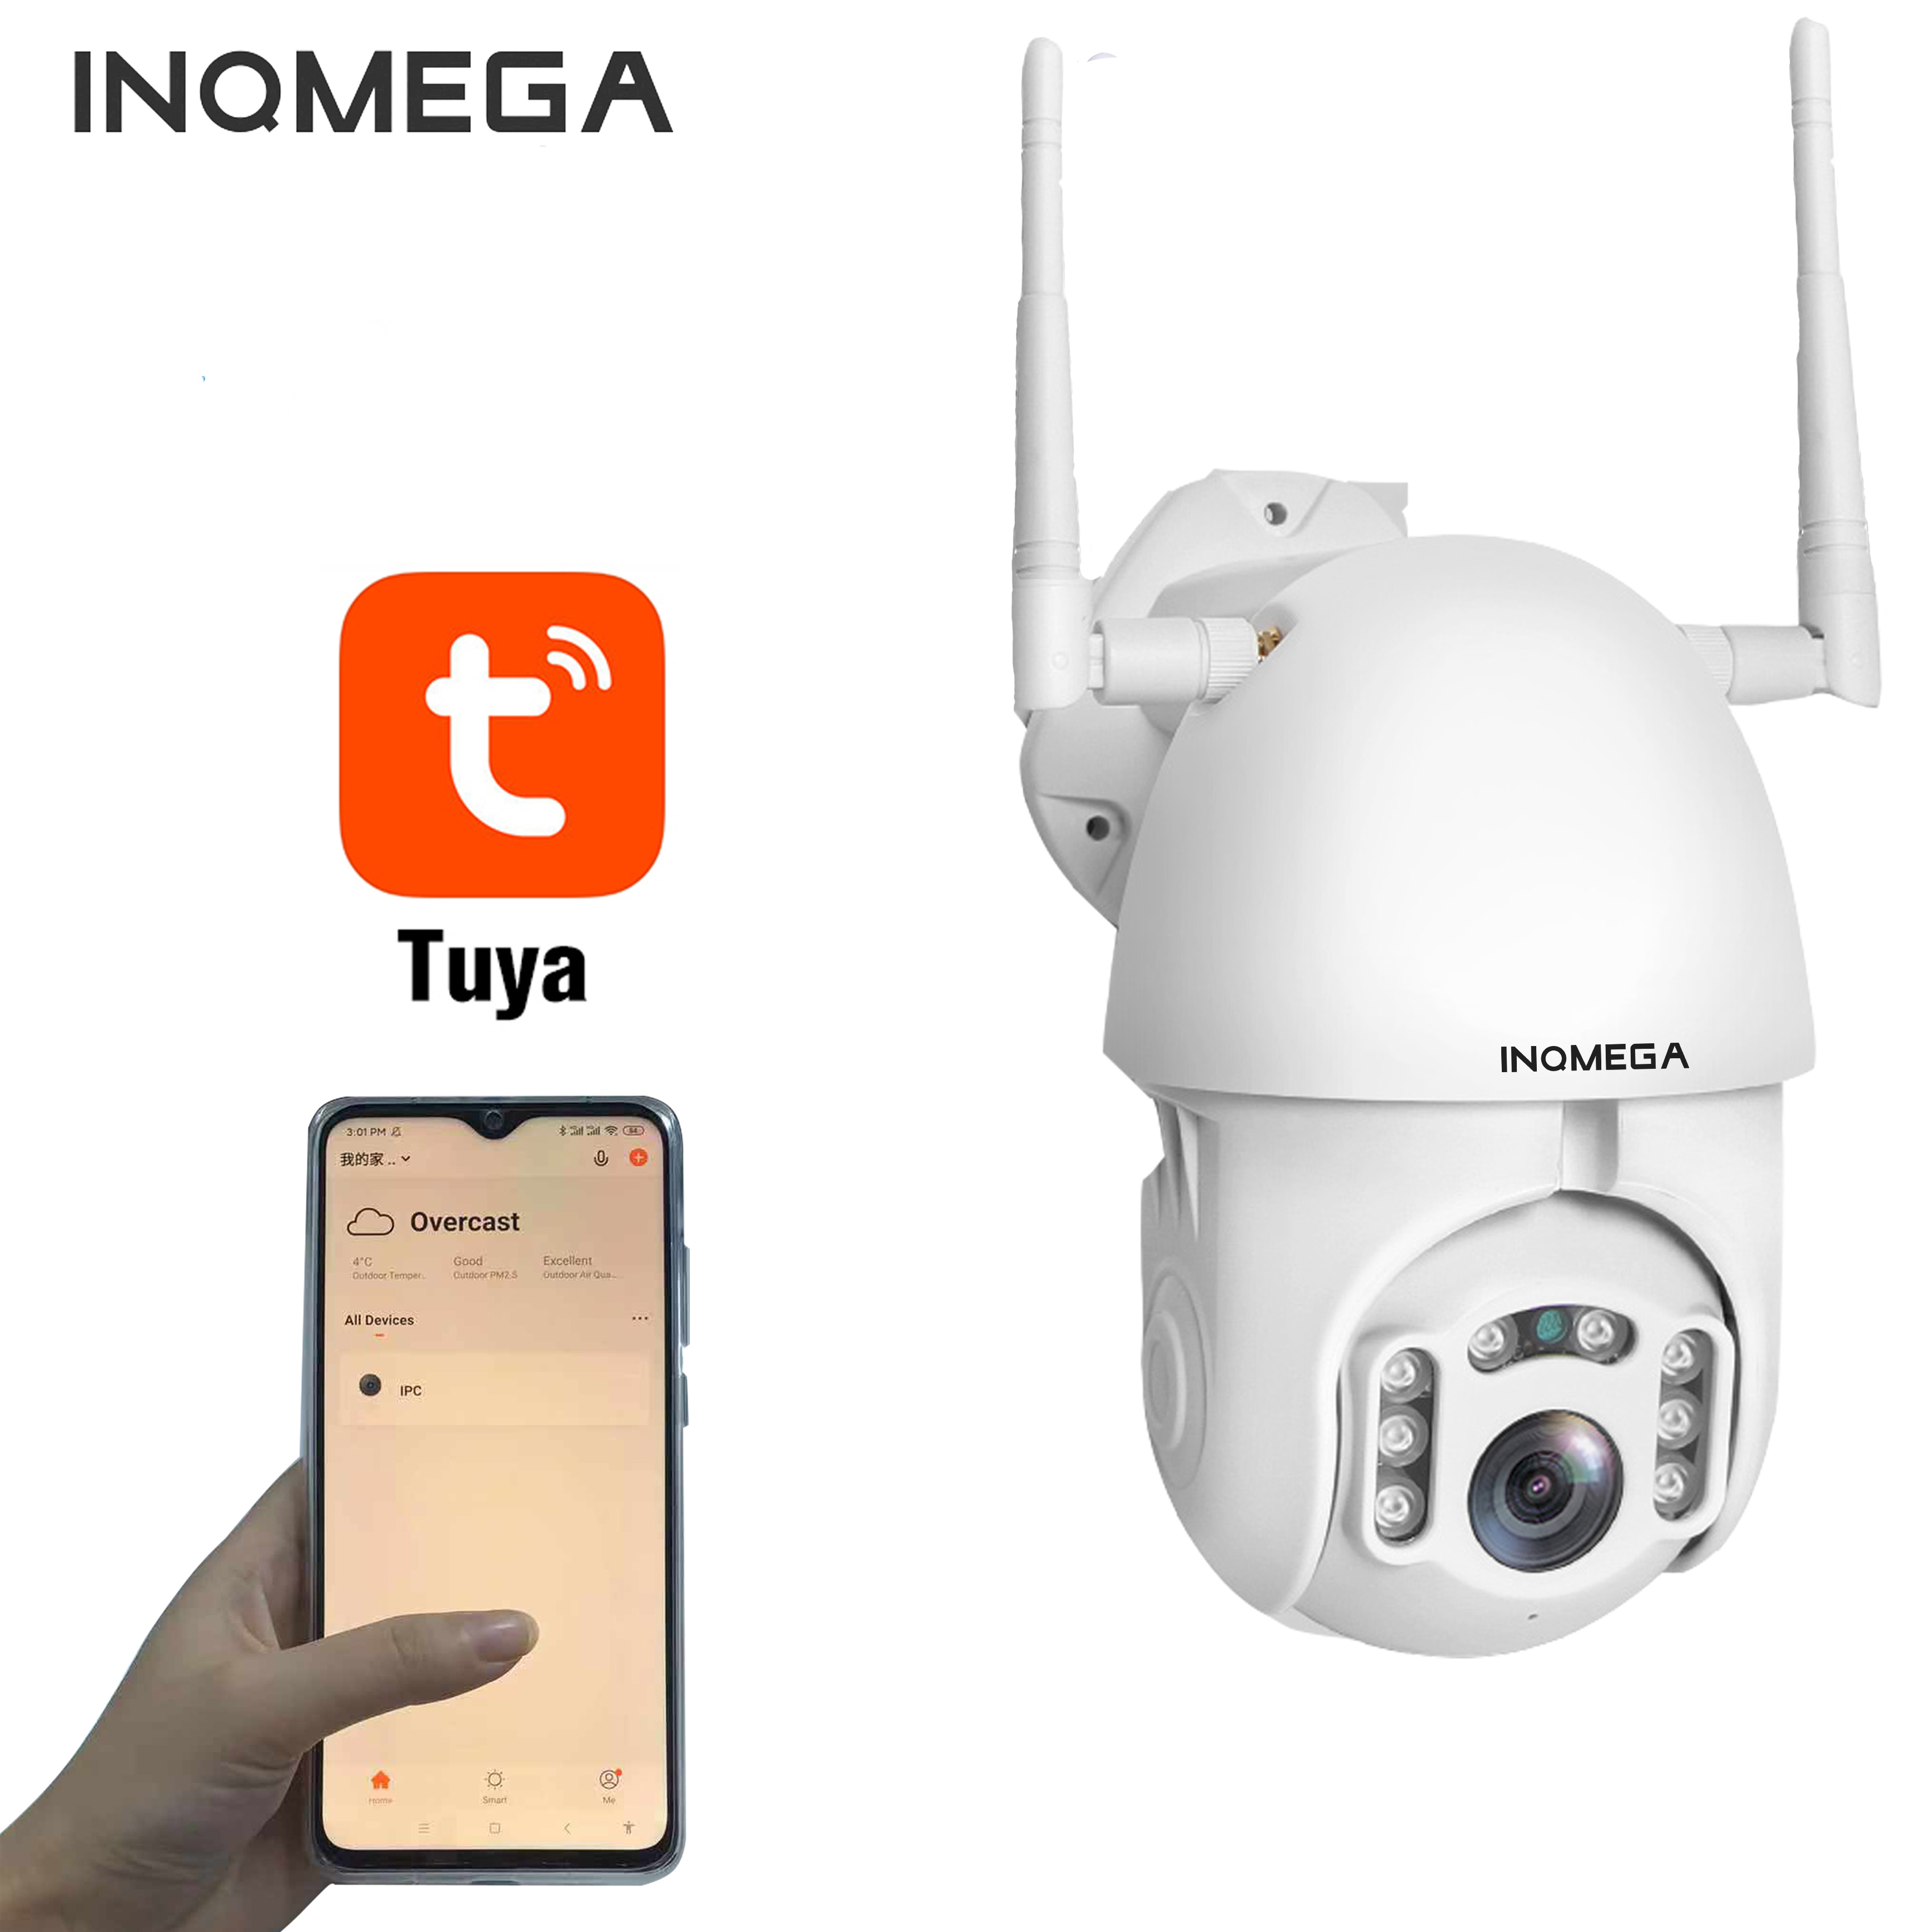 INQMEGA Outdoor IP66 Waterproof Camera 1080P FHD TUYA Life PTZ Home Monitor Bidirectional Voice Dynamic Tracking Security Alarm